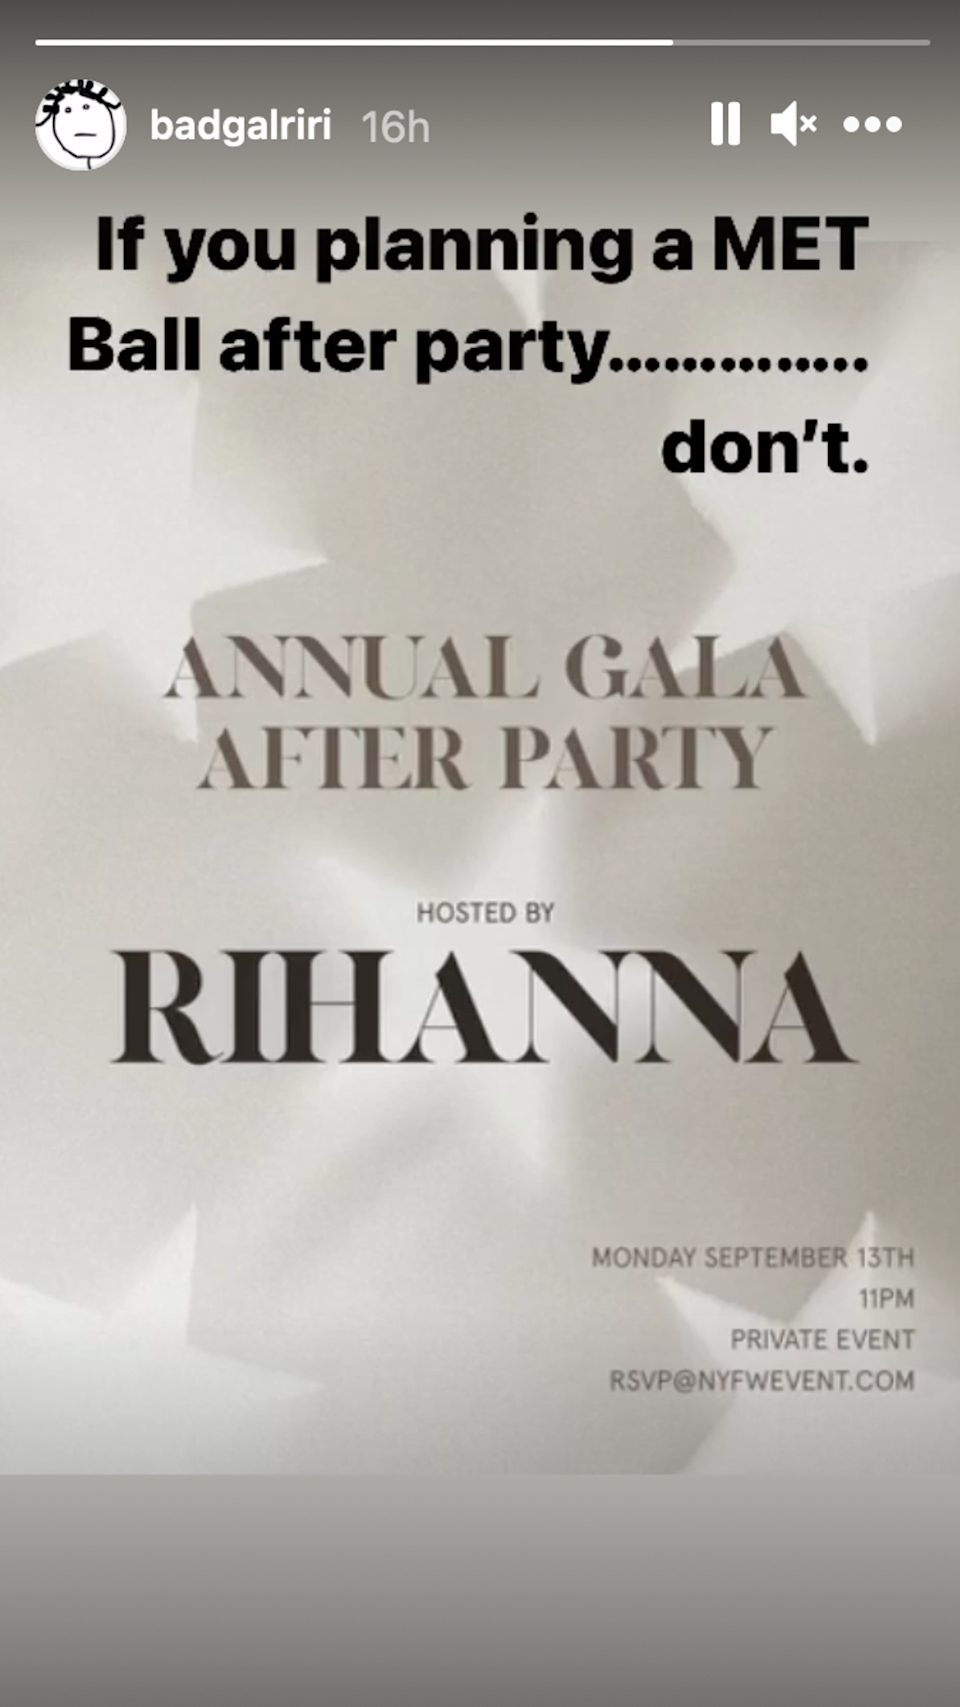 Rihanna announces she will be hosting Met Gala after-party (Rihanna)